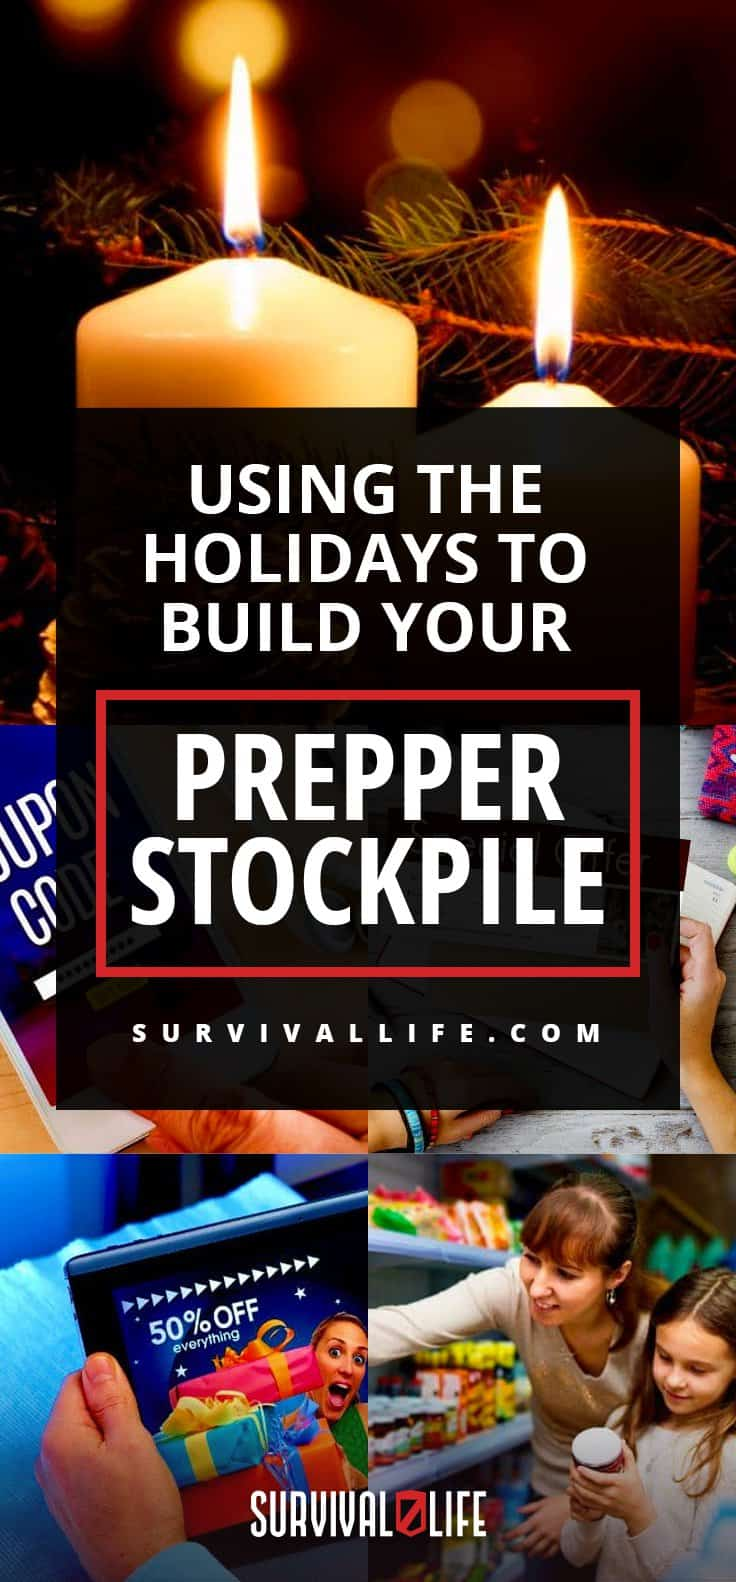 Prepper Stockpile   Using the Holidays To Build Your Prepper Stockpile   preppers list of supplies